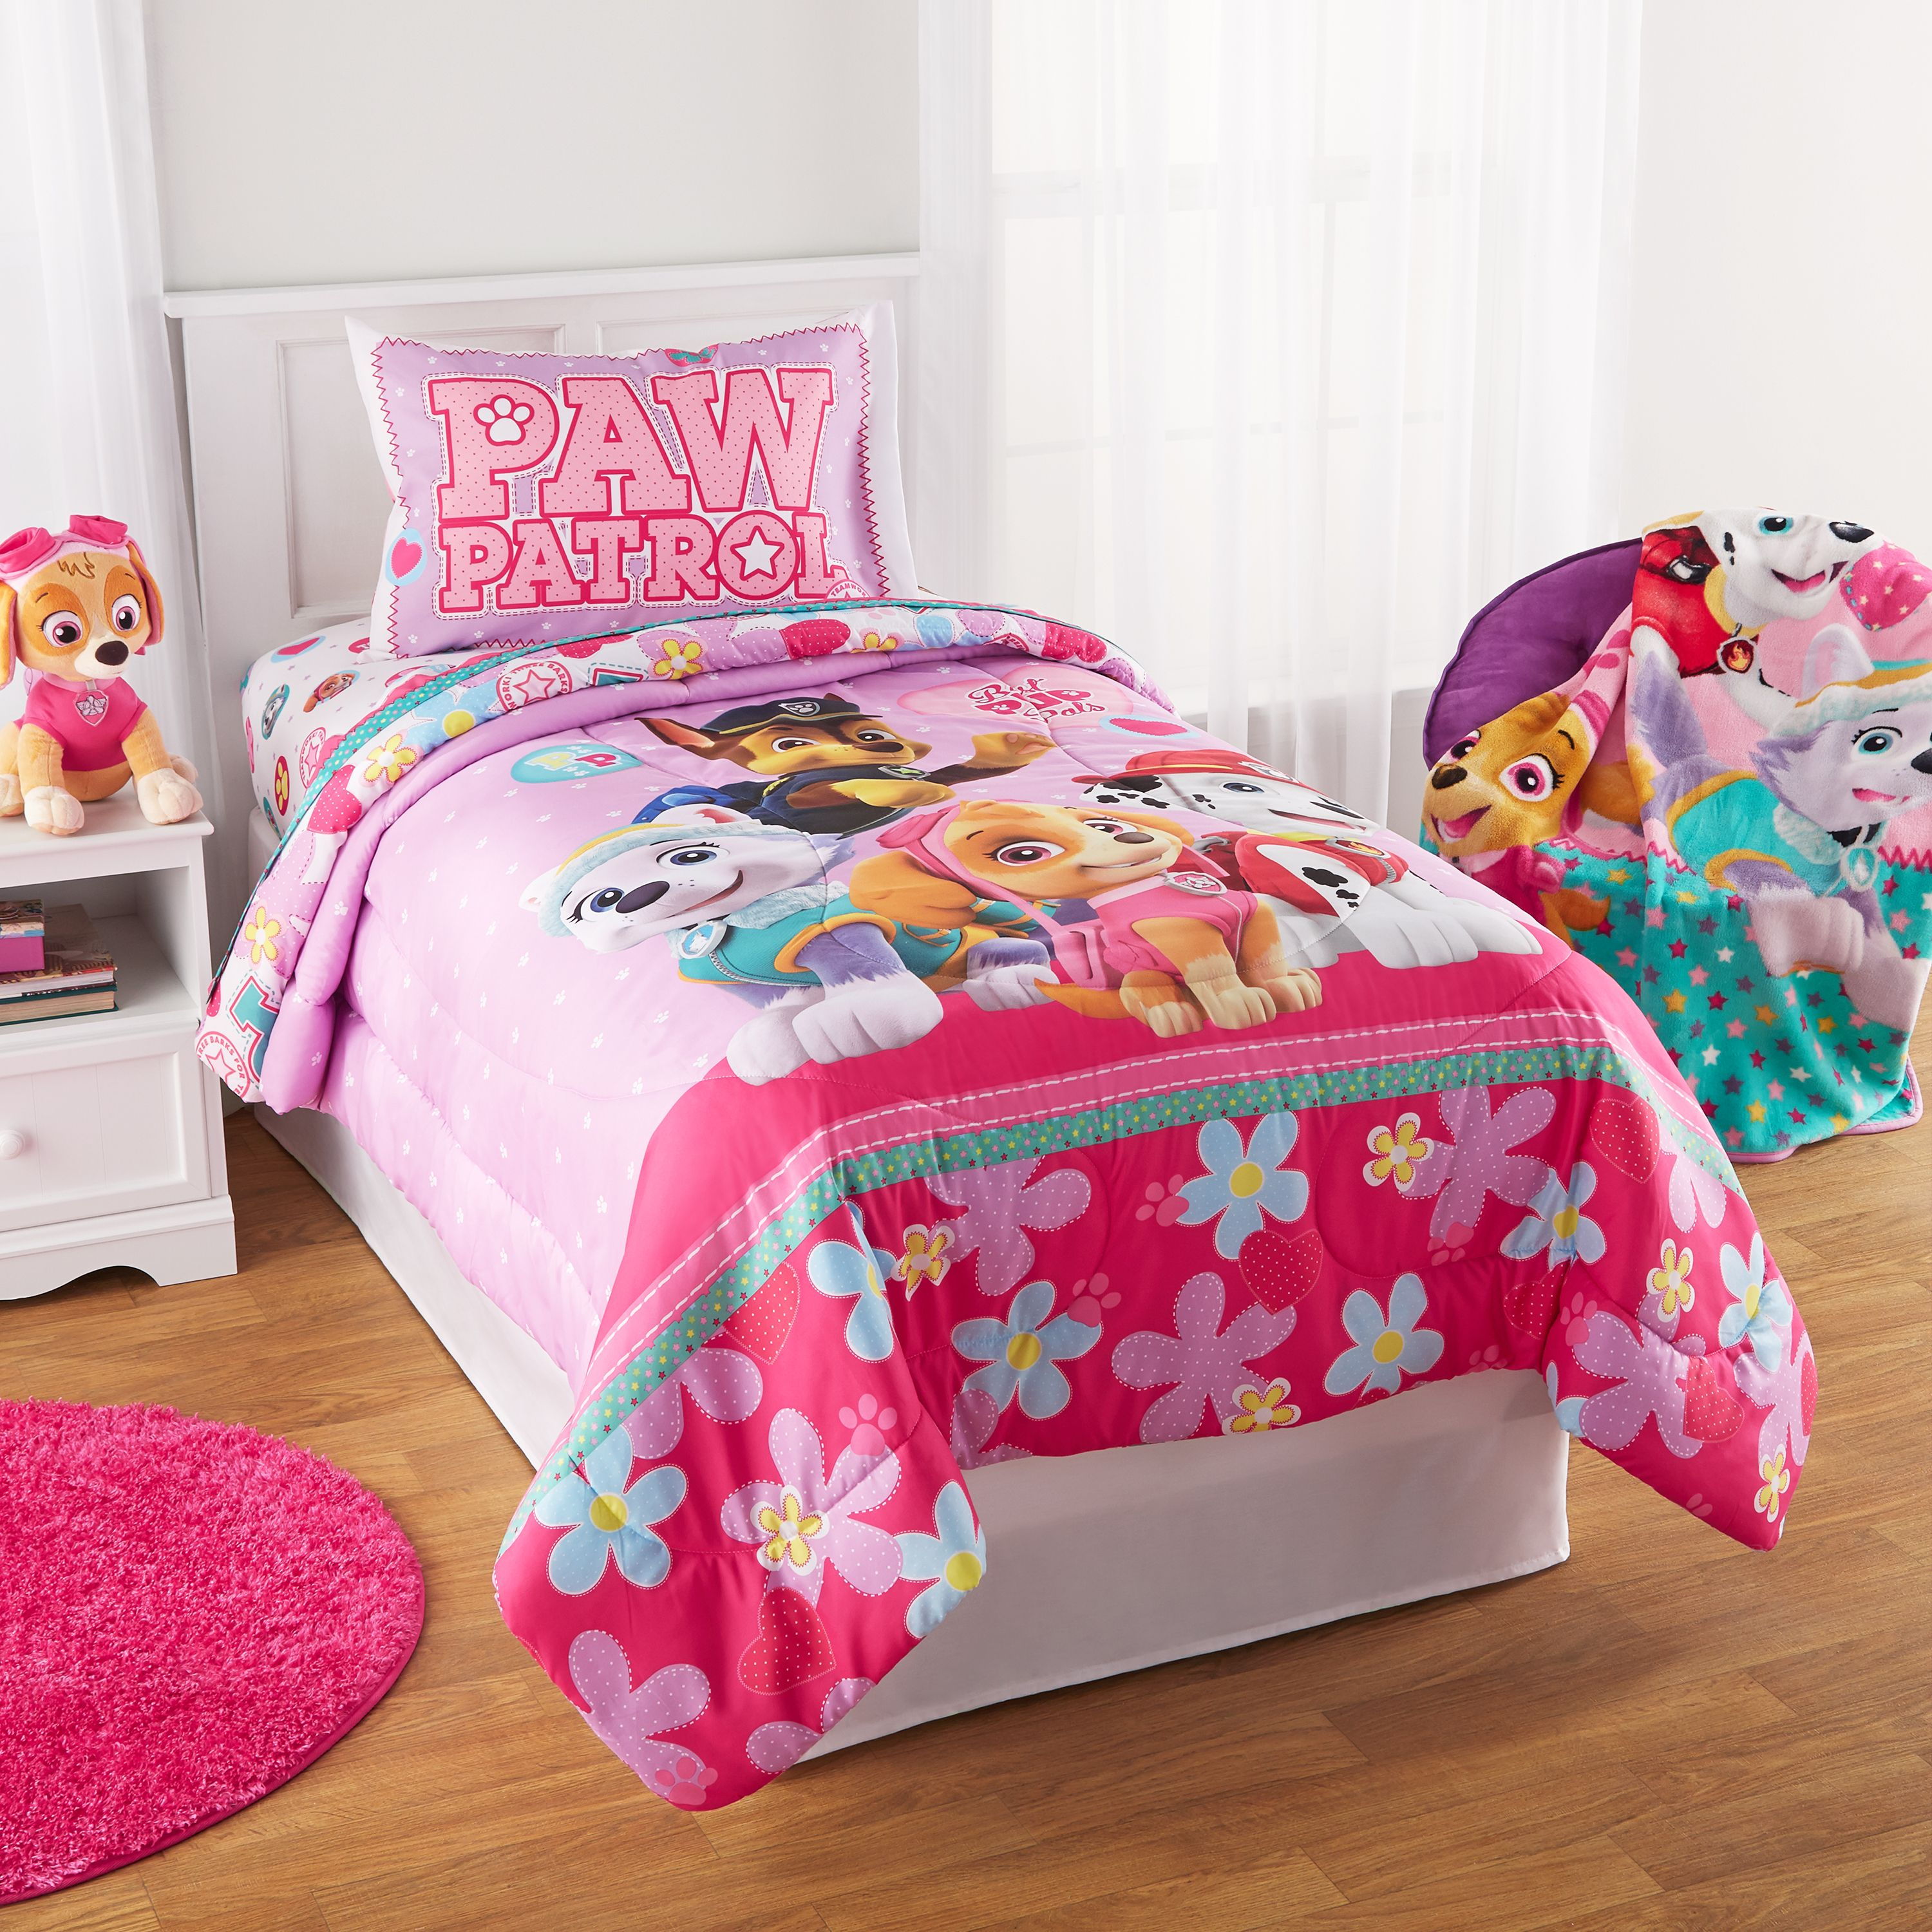 Paw Patrol Girl Best Pup Pals Bed In Bag Bedding Set